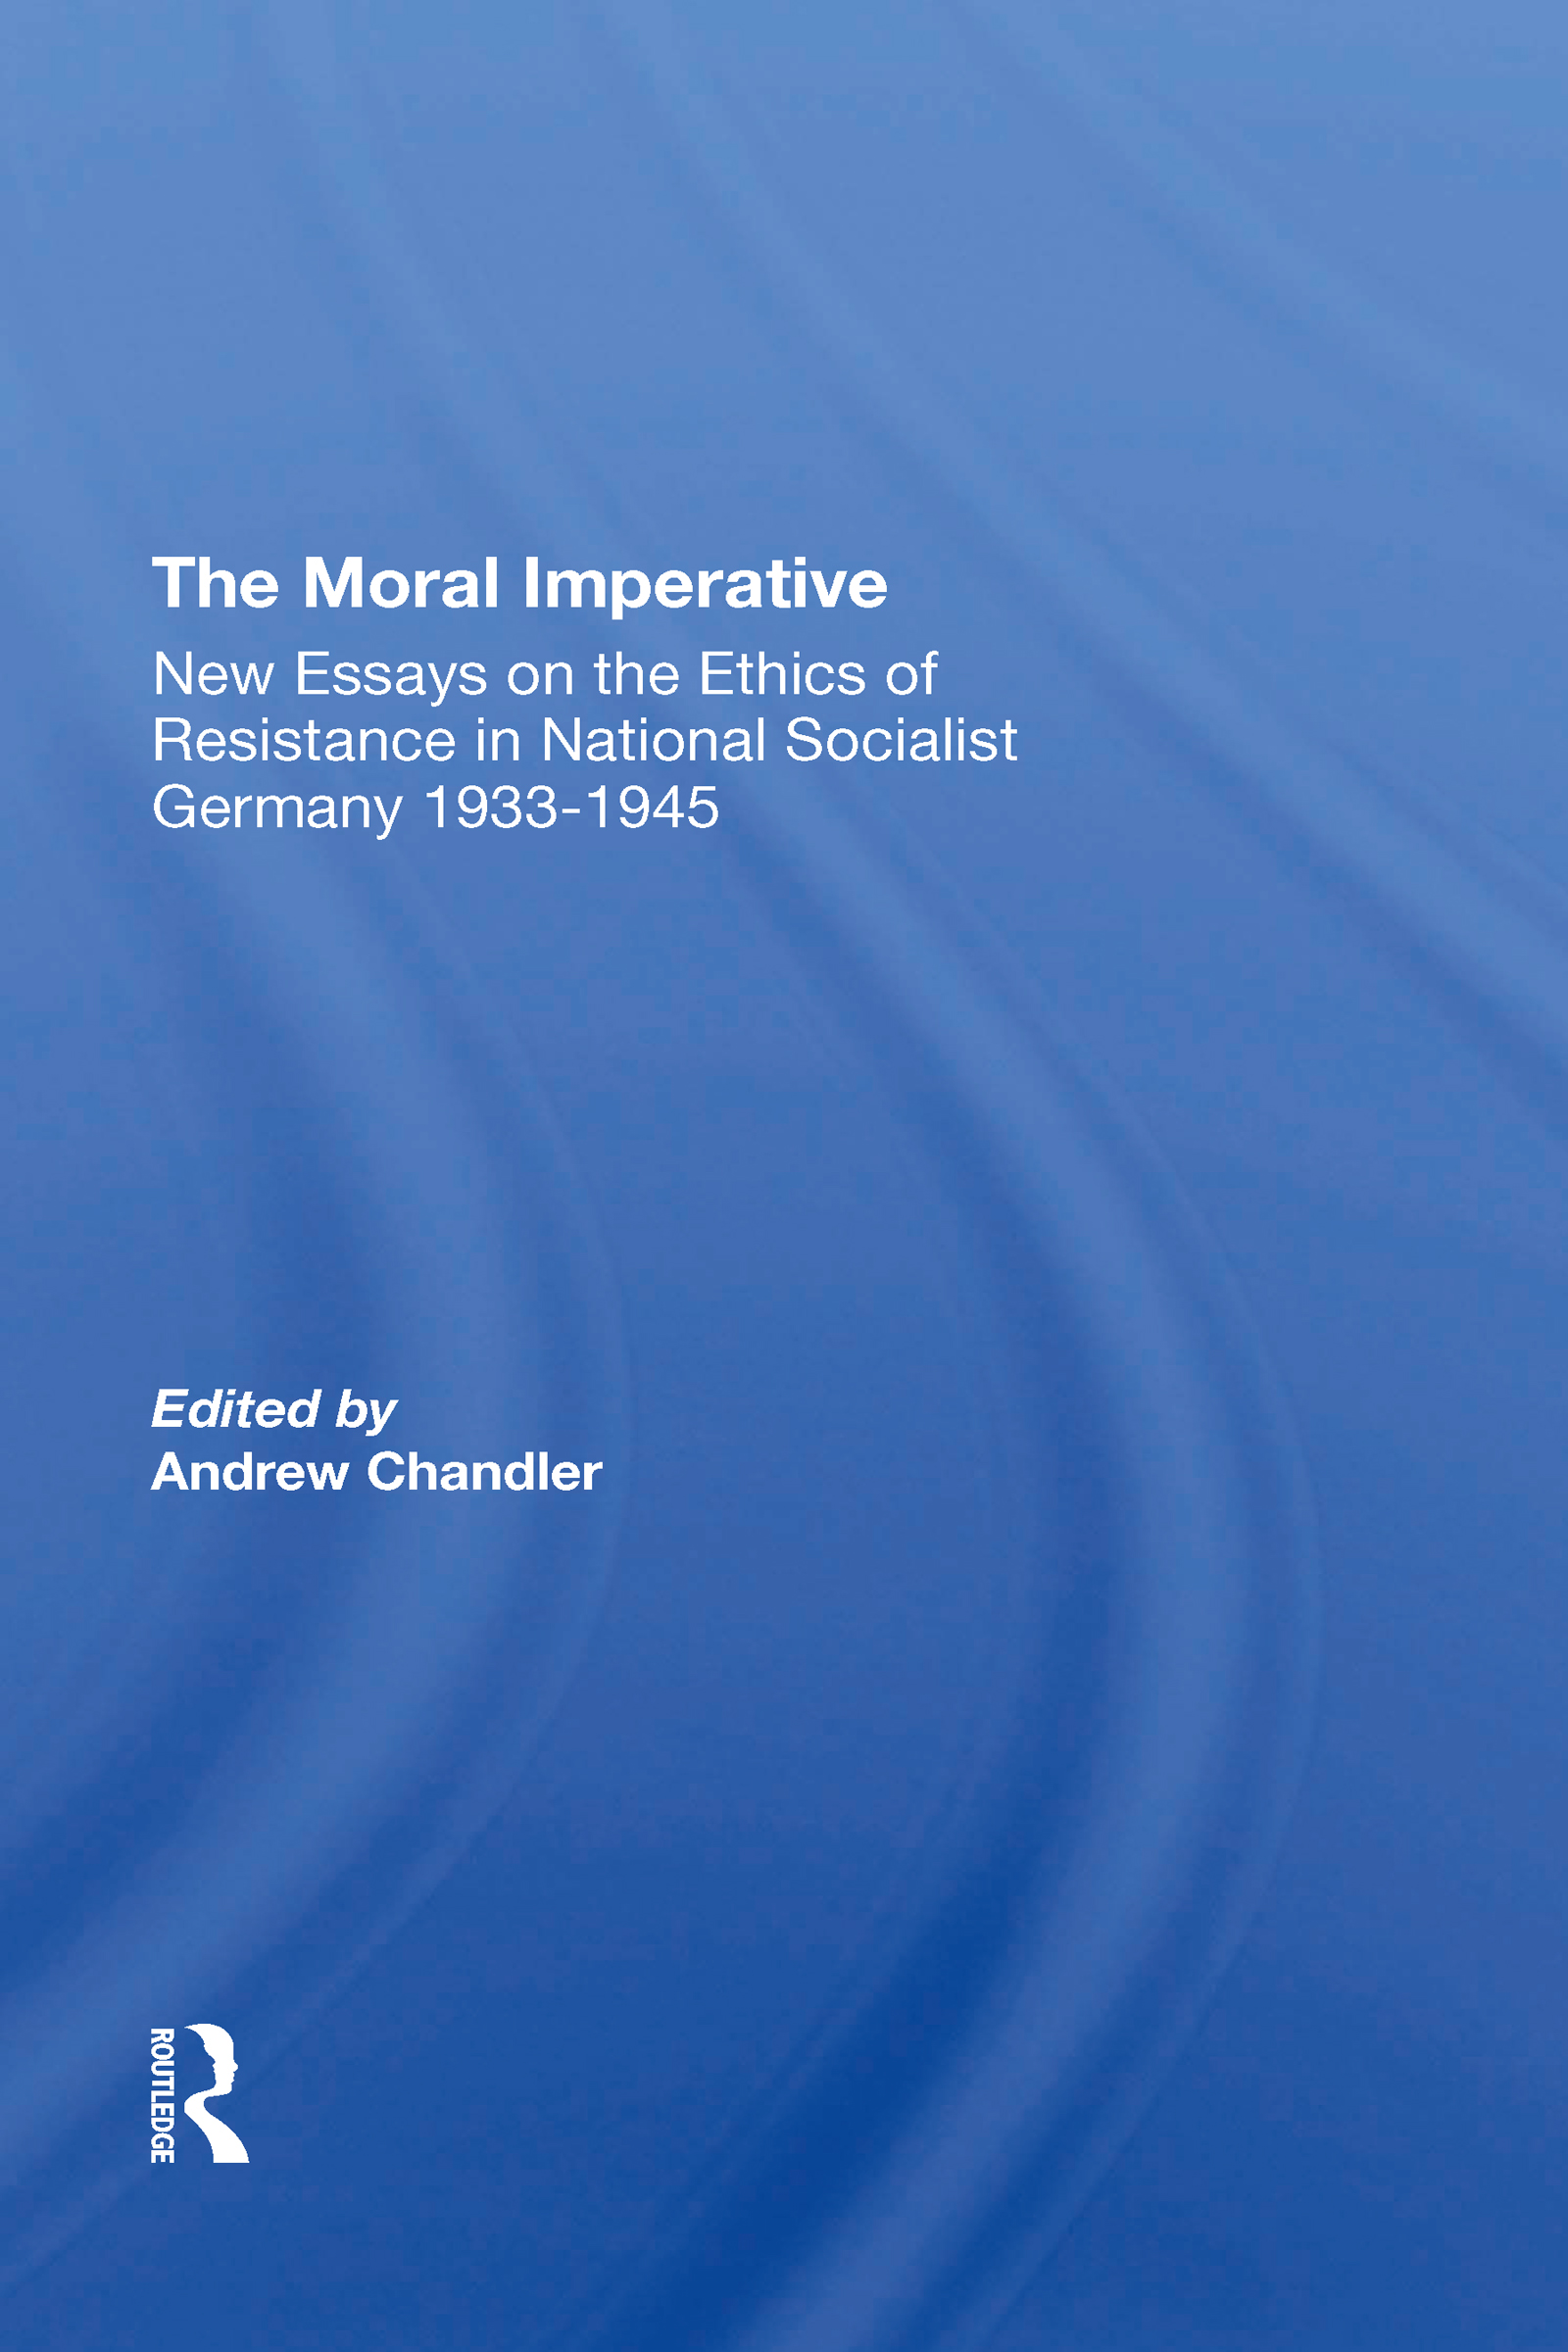 The Moral Imperative